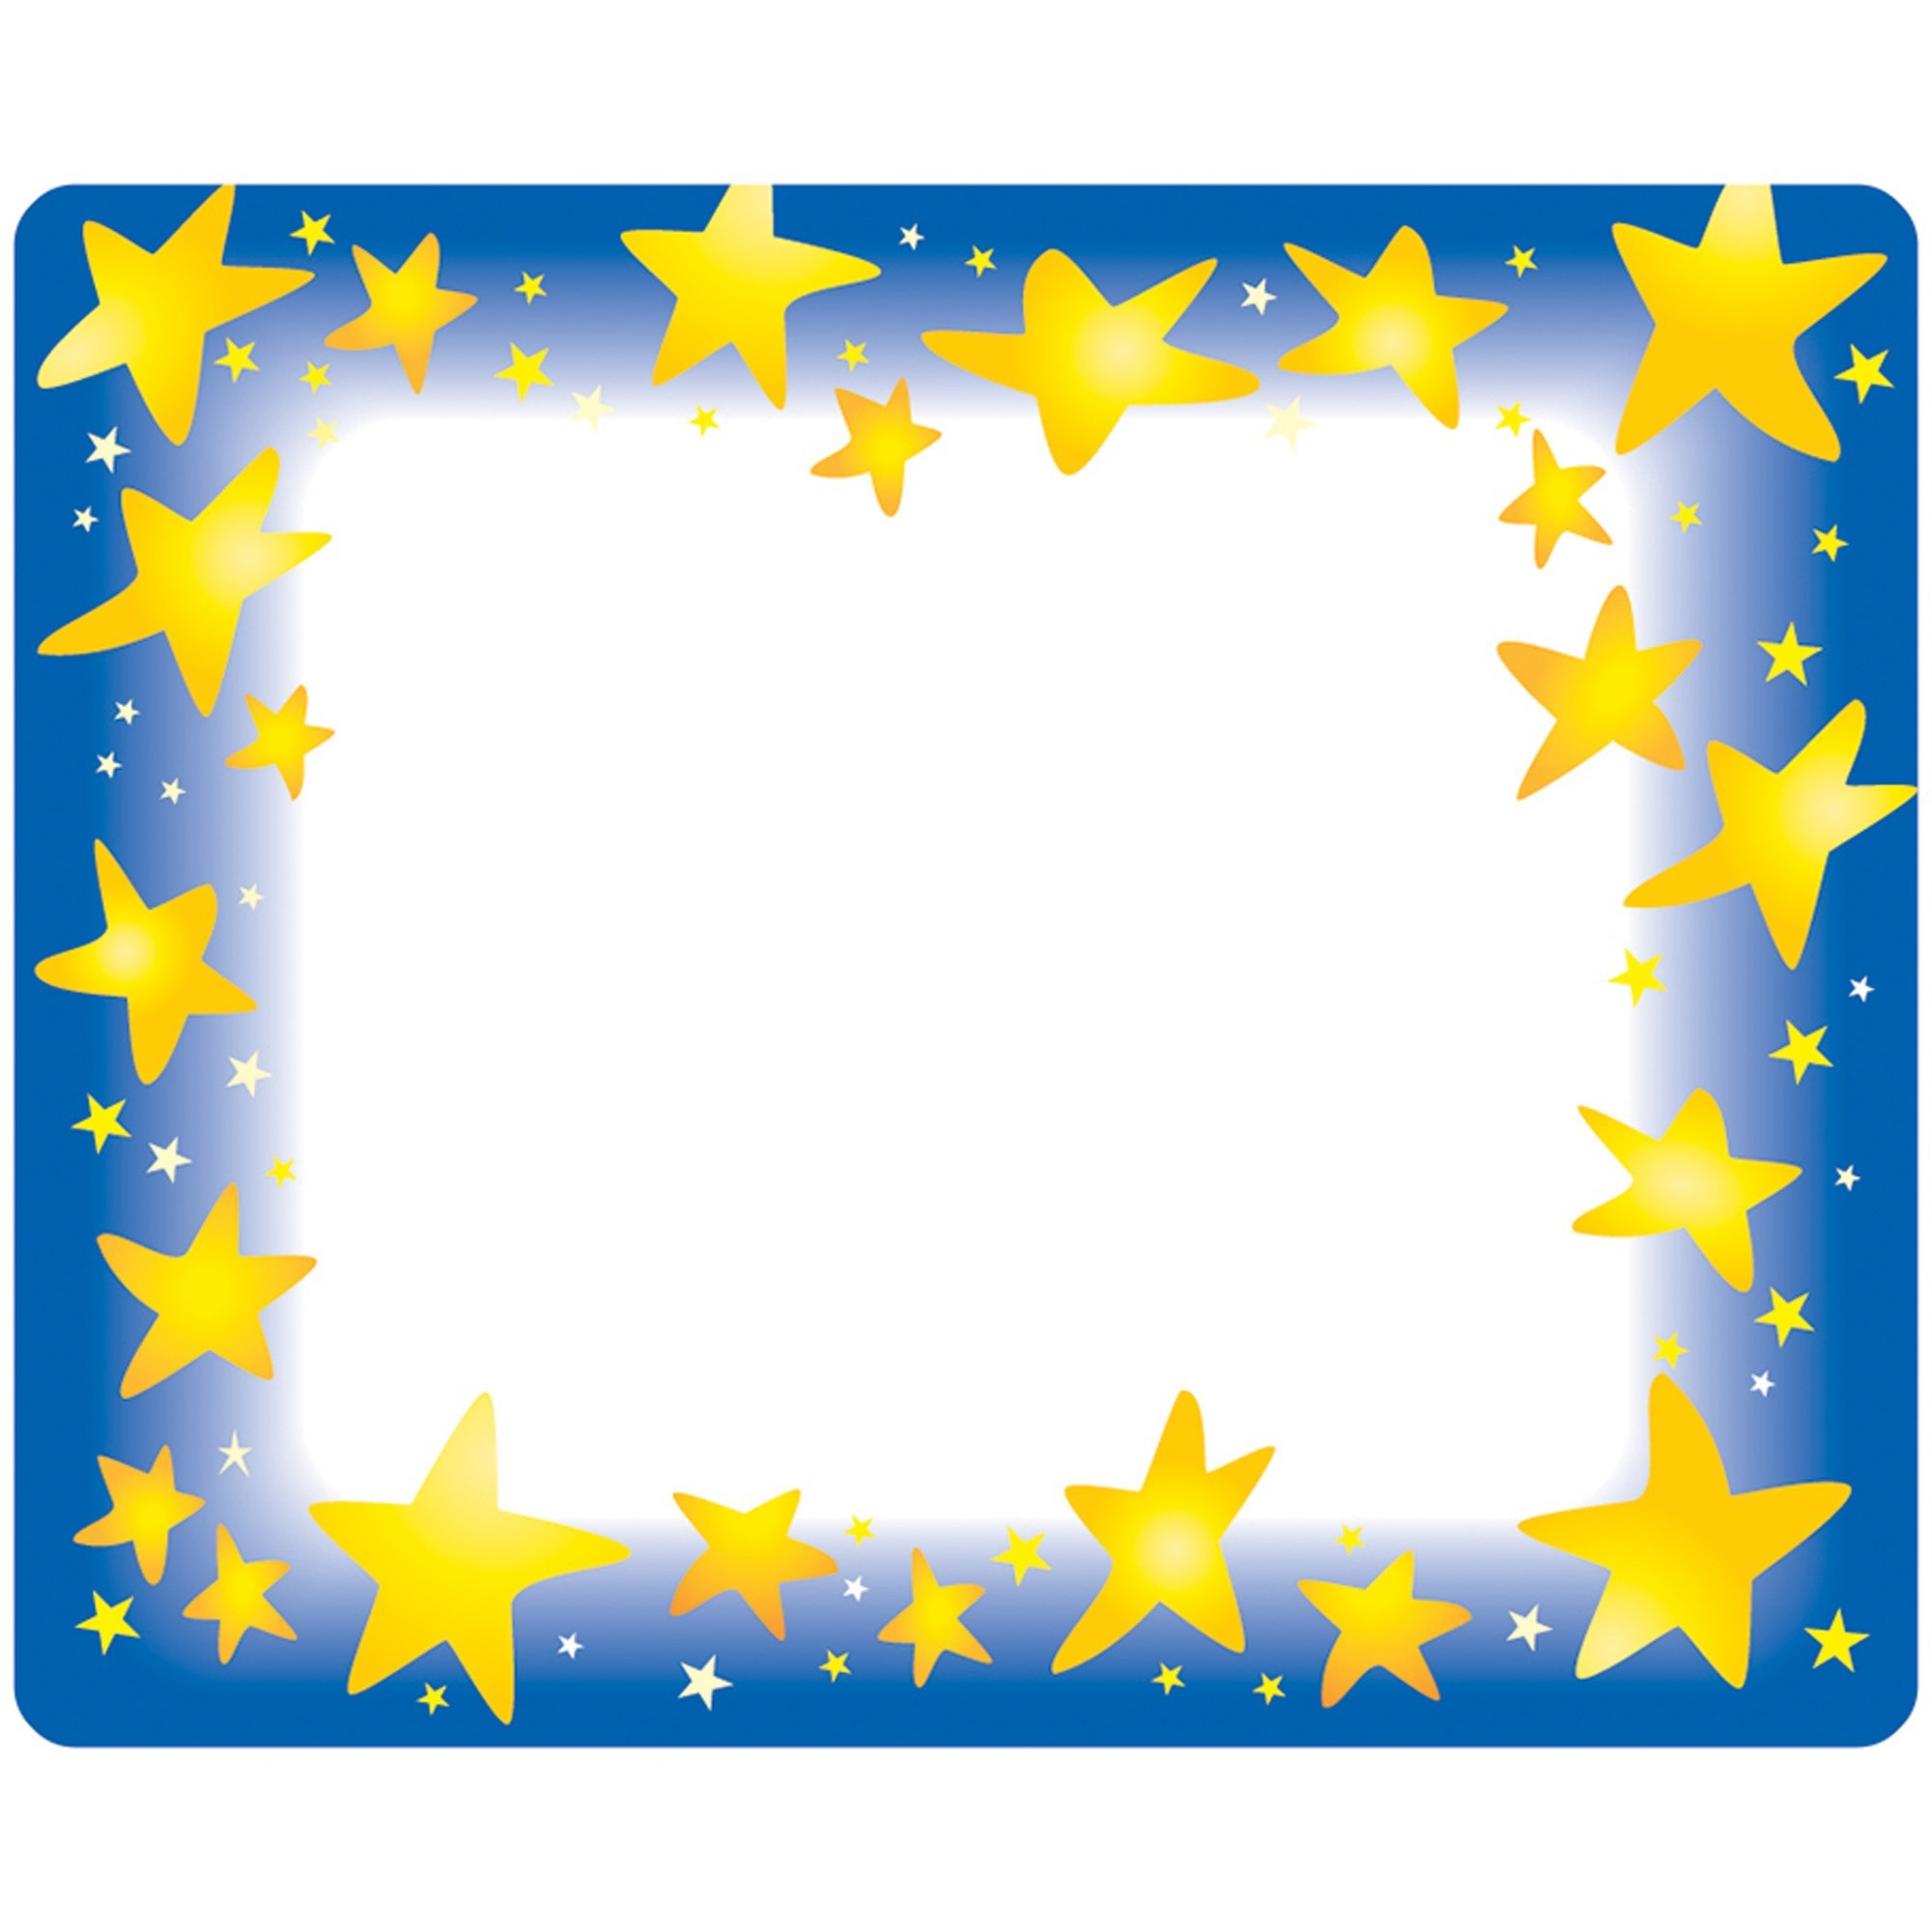 Trend, TEPT68022, Star Bright Self-adhesive Name Tags, 36 / Pack, Assorted